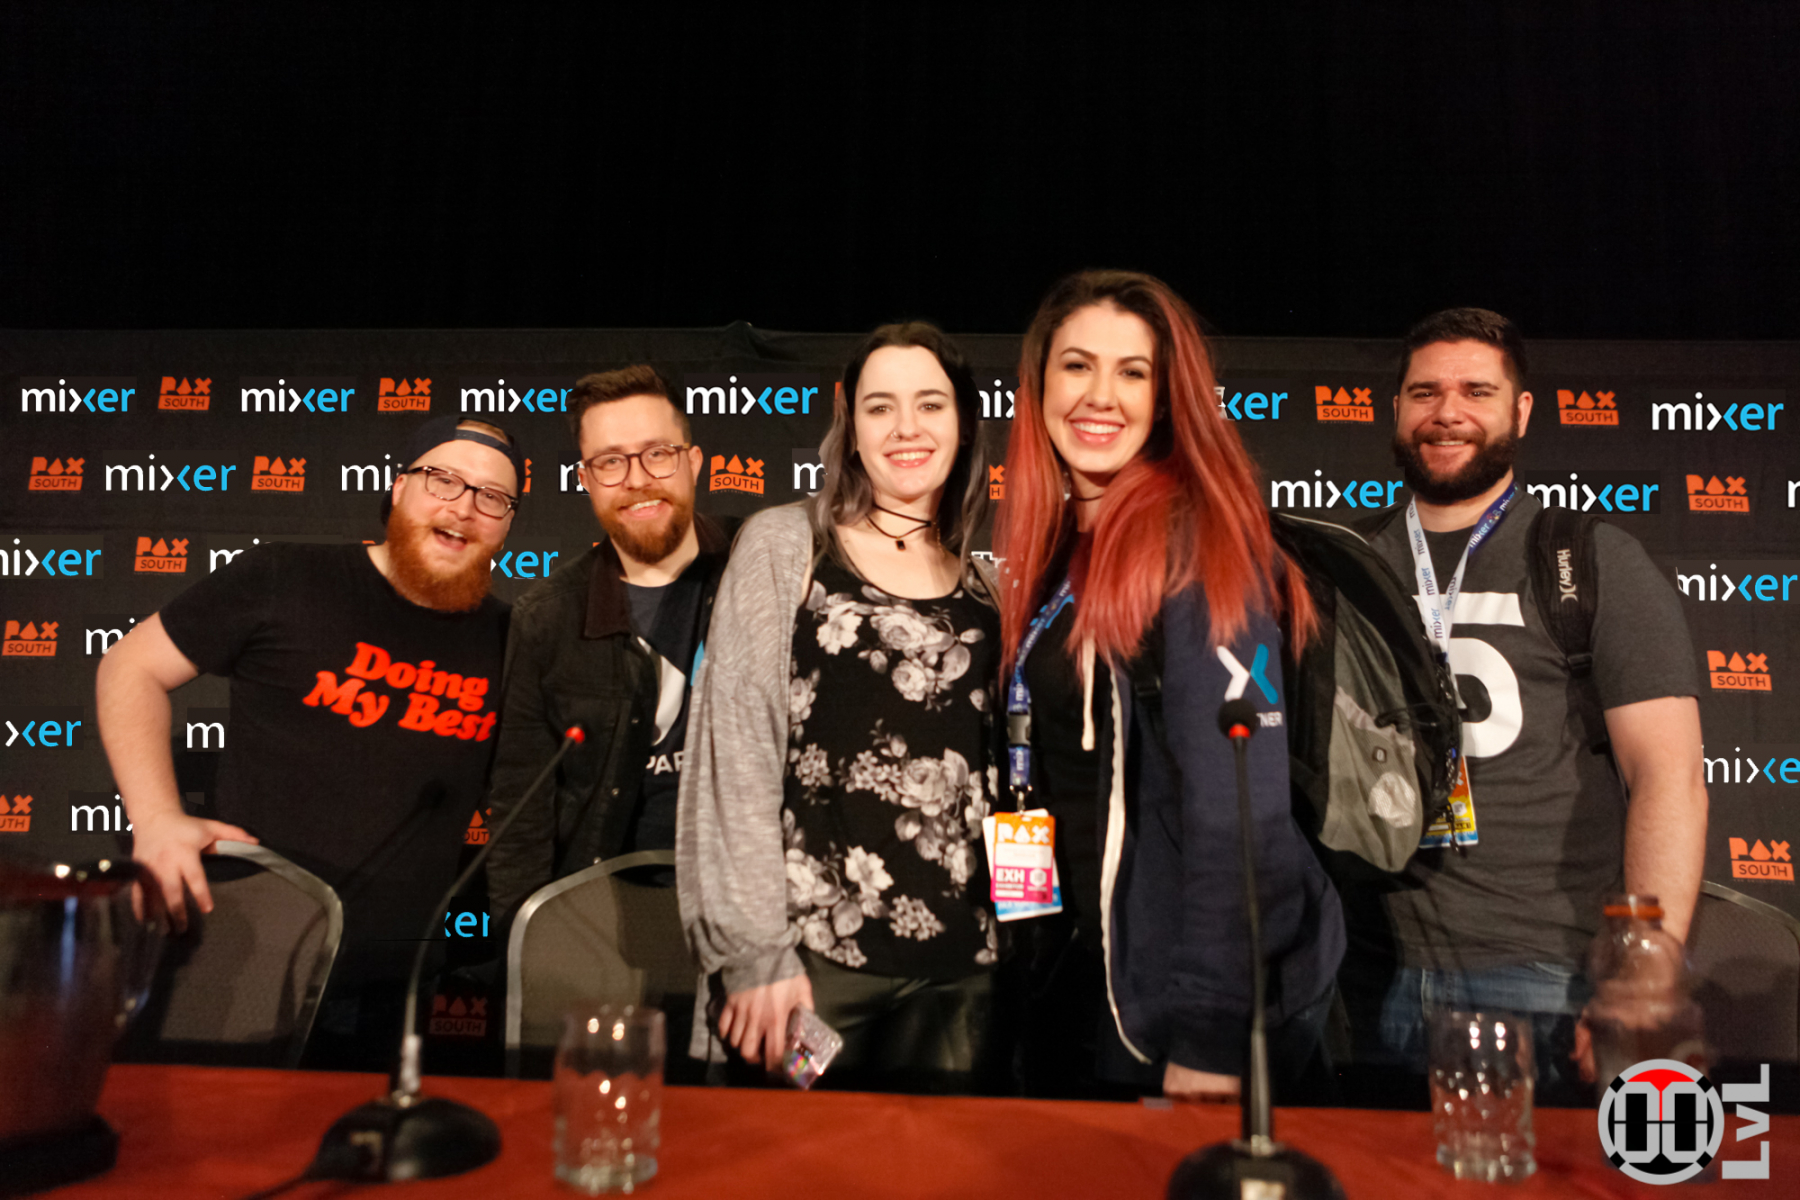 PAX-South-2019-14-mixer